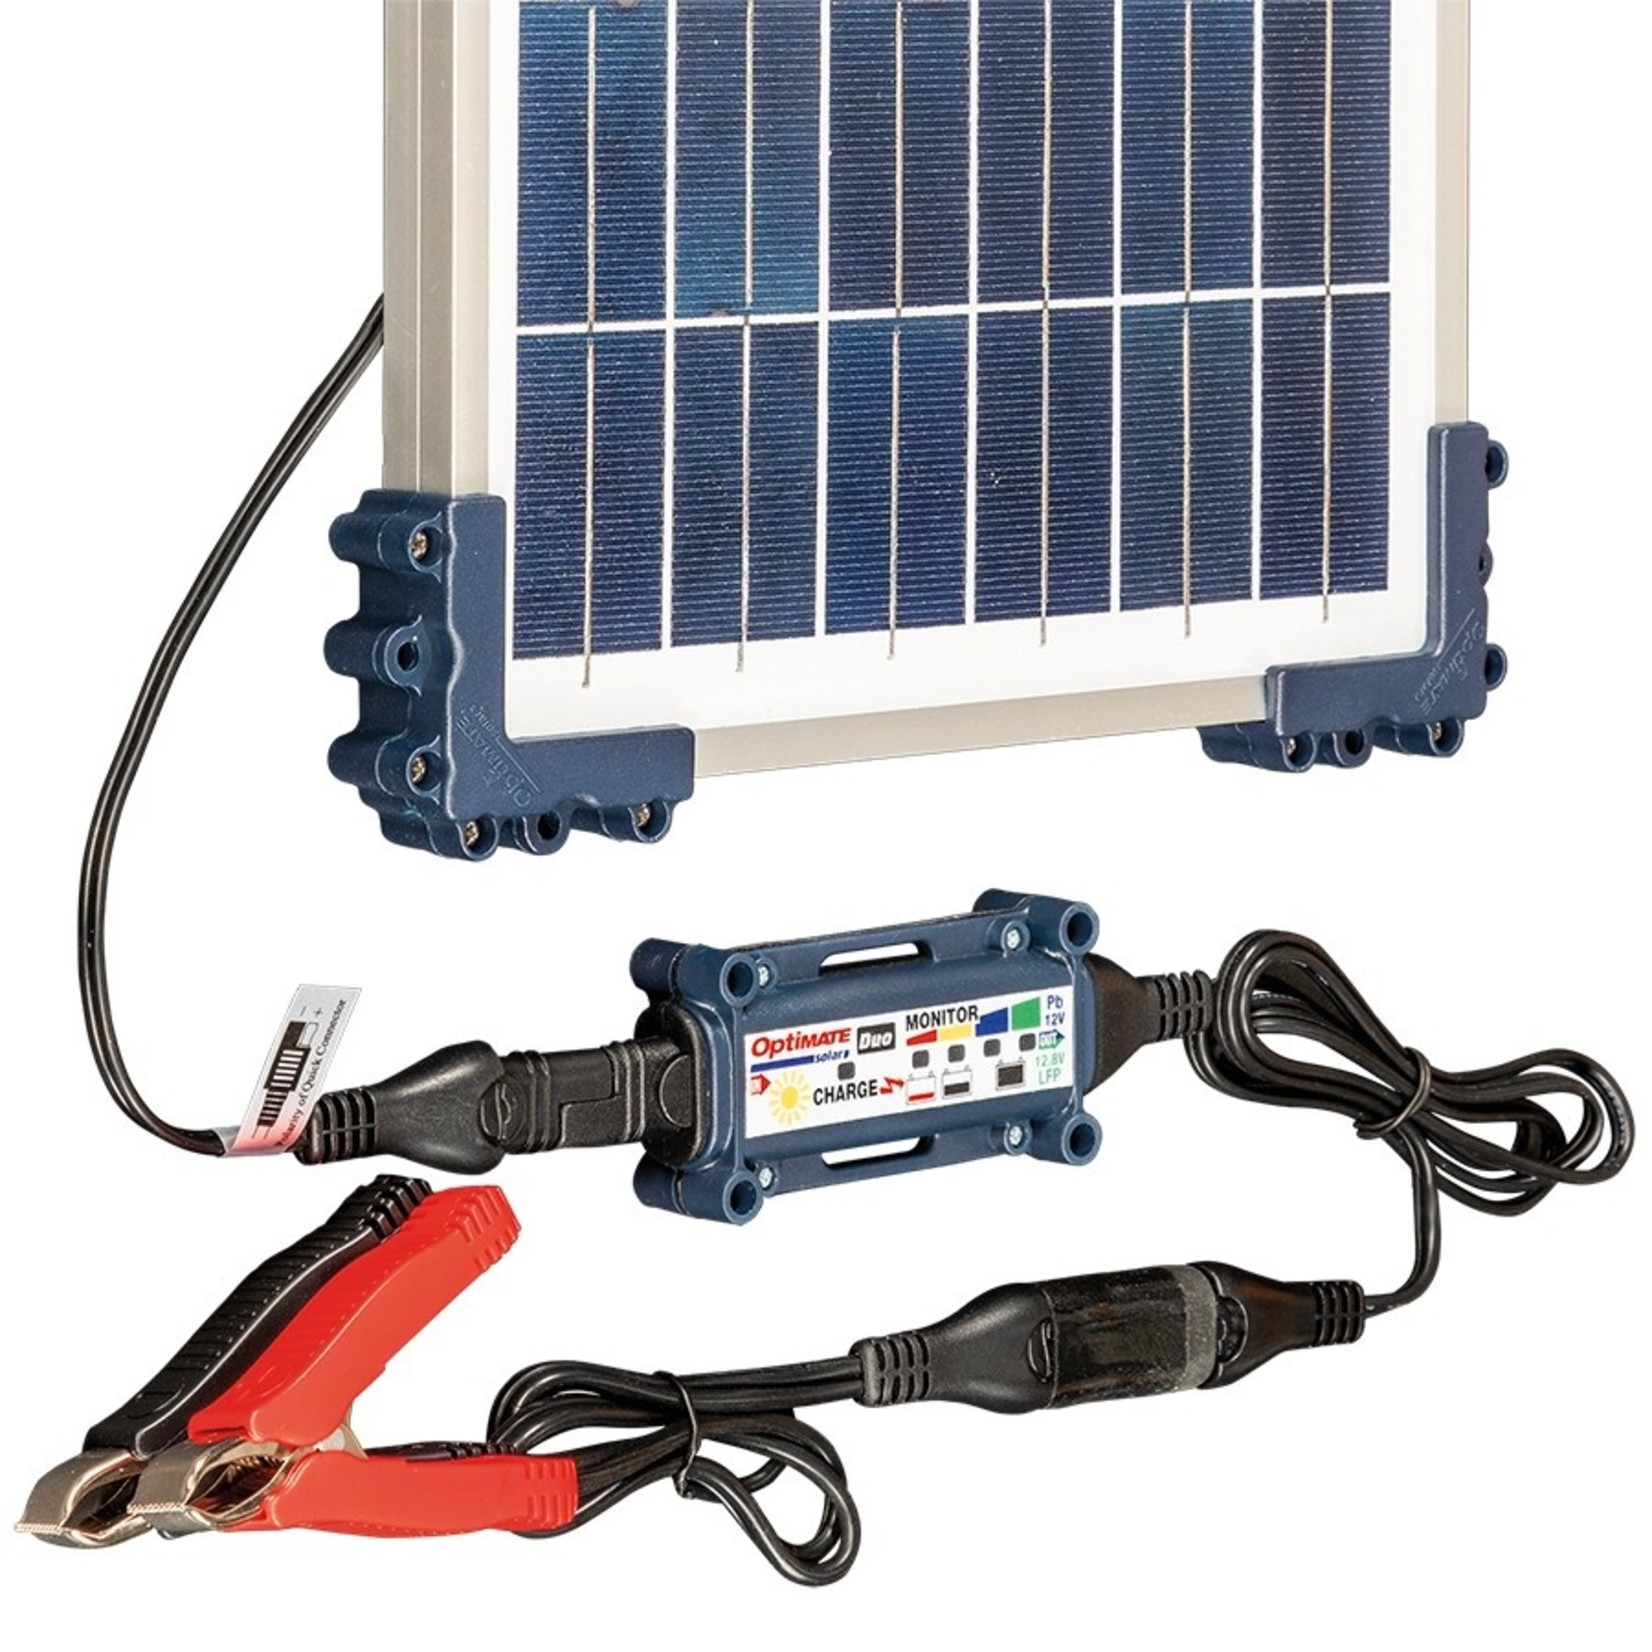 OptiMate DUO Solar 10W - Acculader